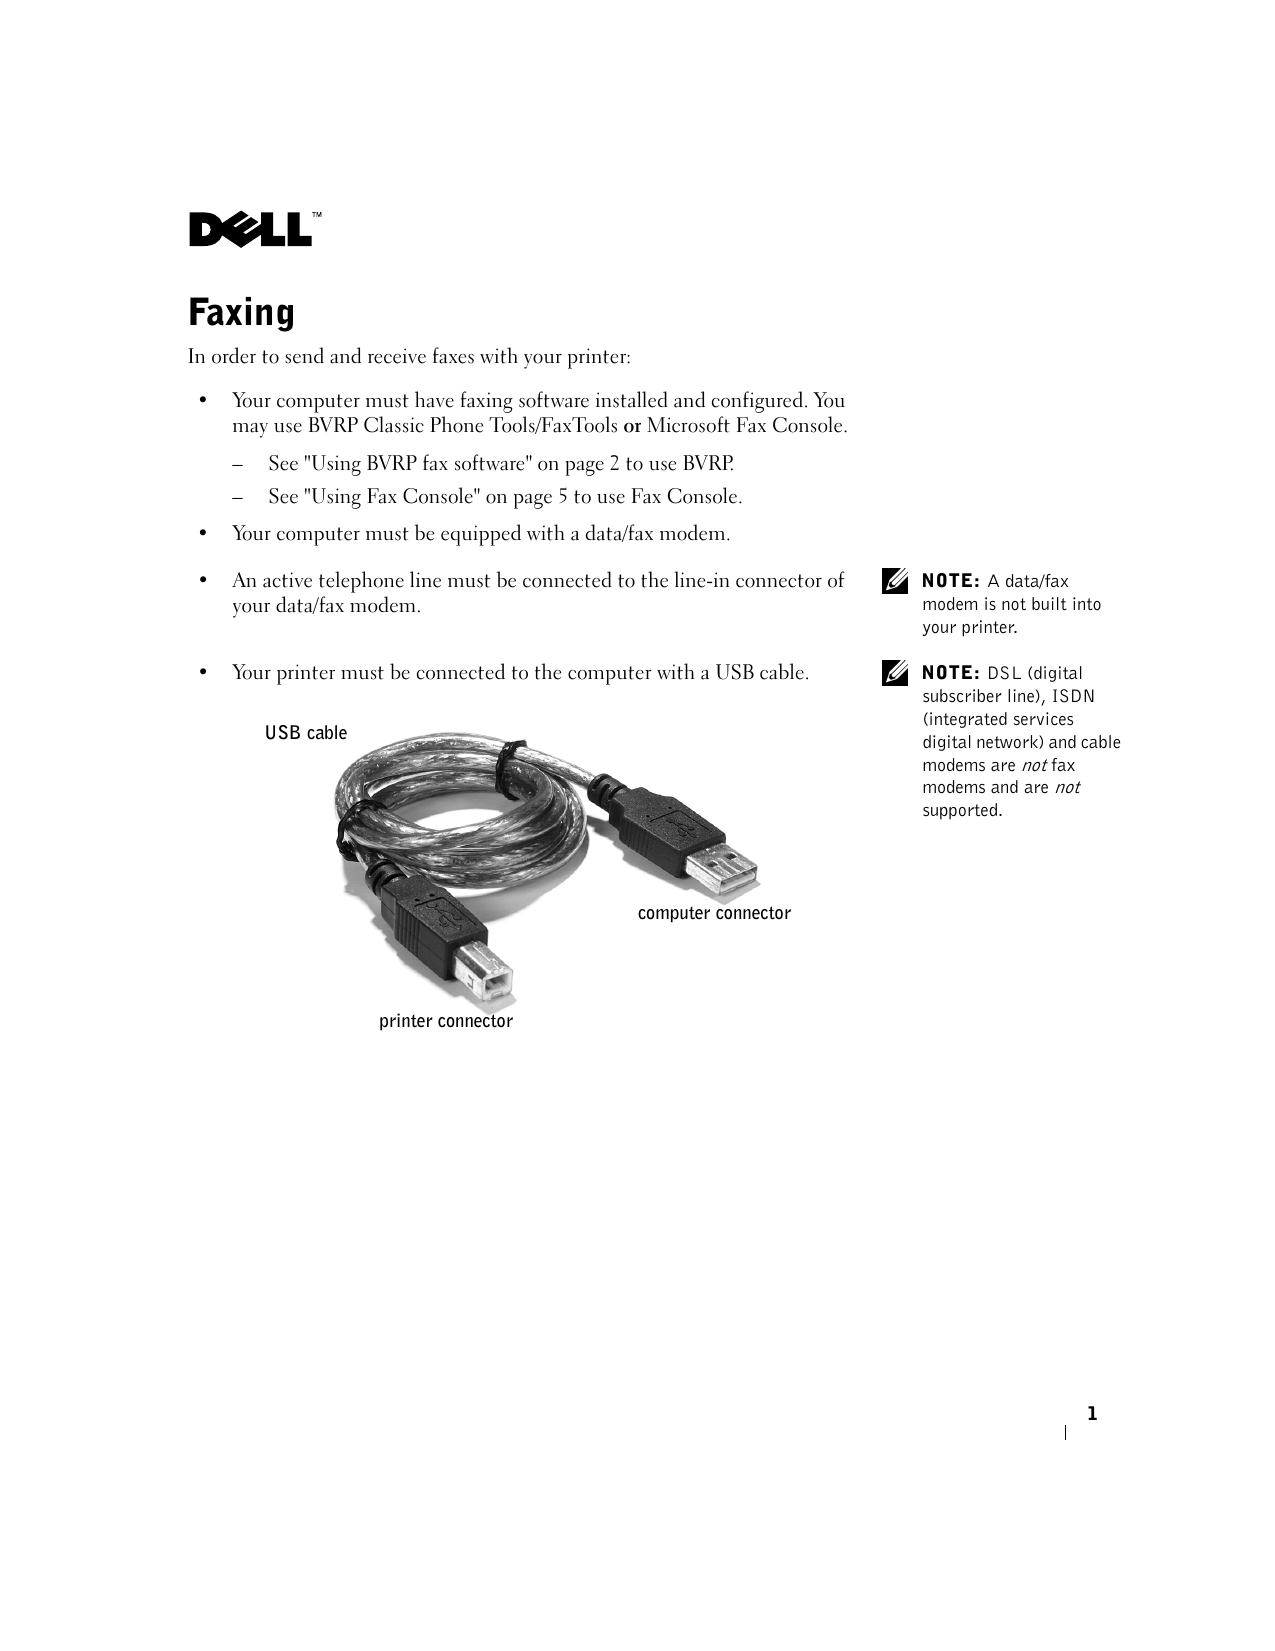 dell a940 all in one personal printer owner s manual free pdf rh manualagent com Dell A940 All in One Dell A940 All in One